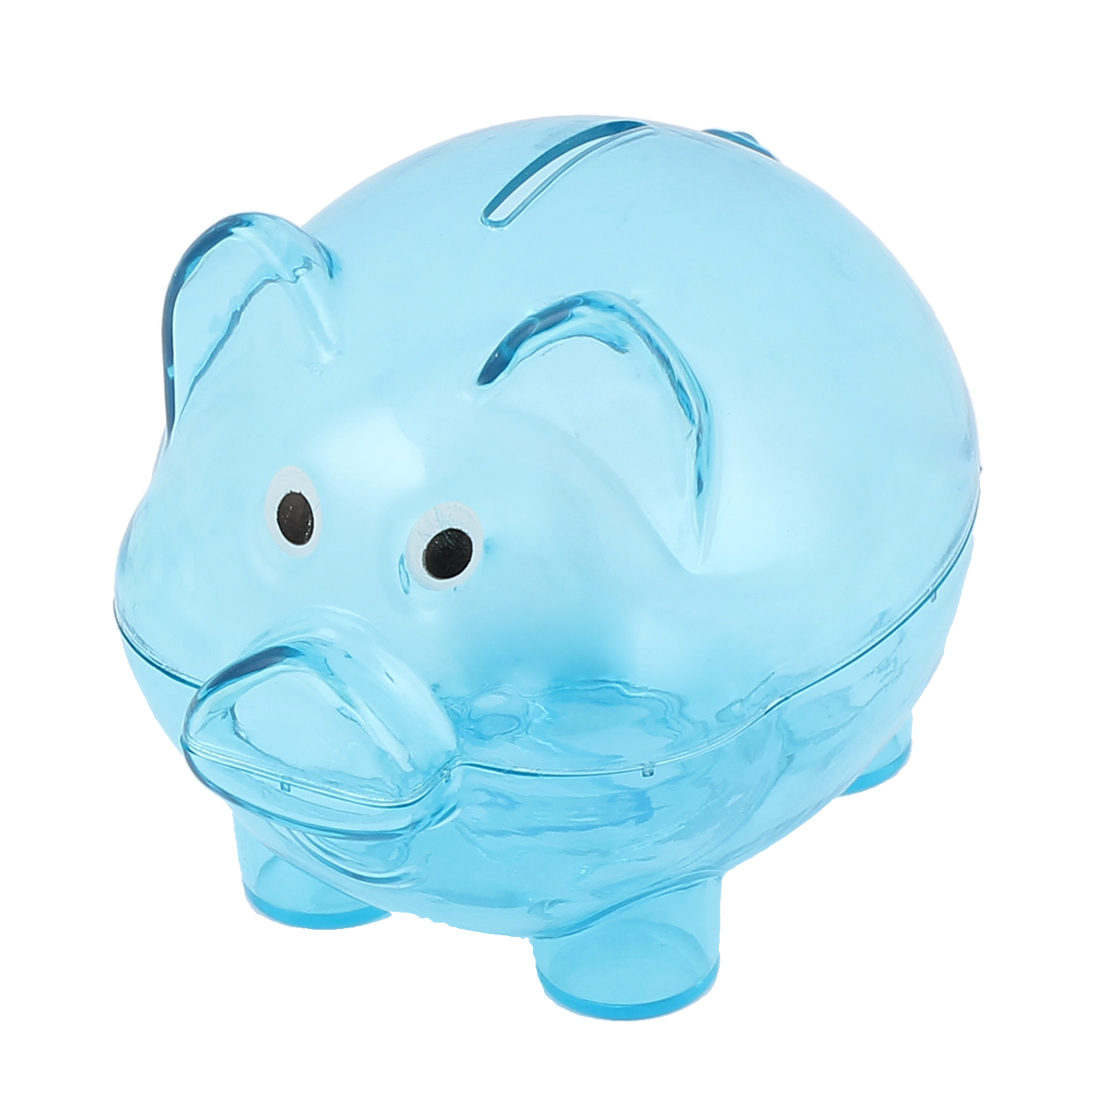 Plastic Pig Shape Money Cash Penny Saving Pot Coin Mini Piggy Bank Clear Blue